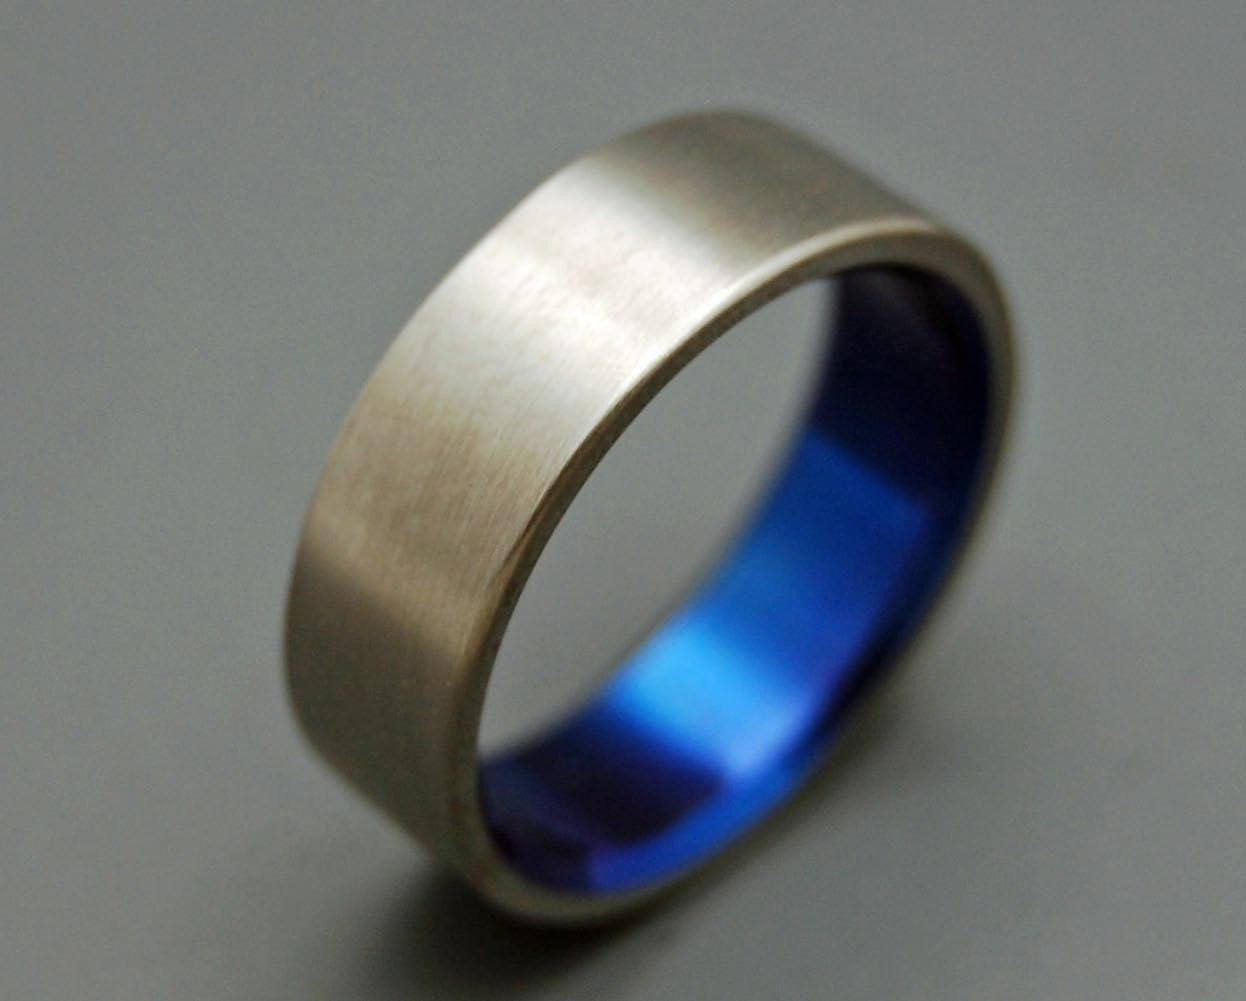 titanium wedding bands wedding rings mens titanium wedding bands wedding rings titanium rings something blue men s rings zoom